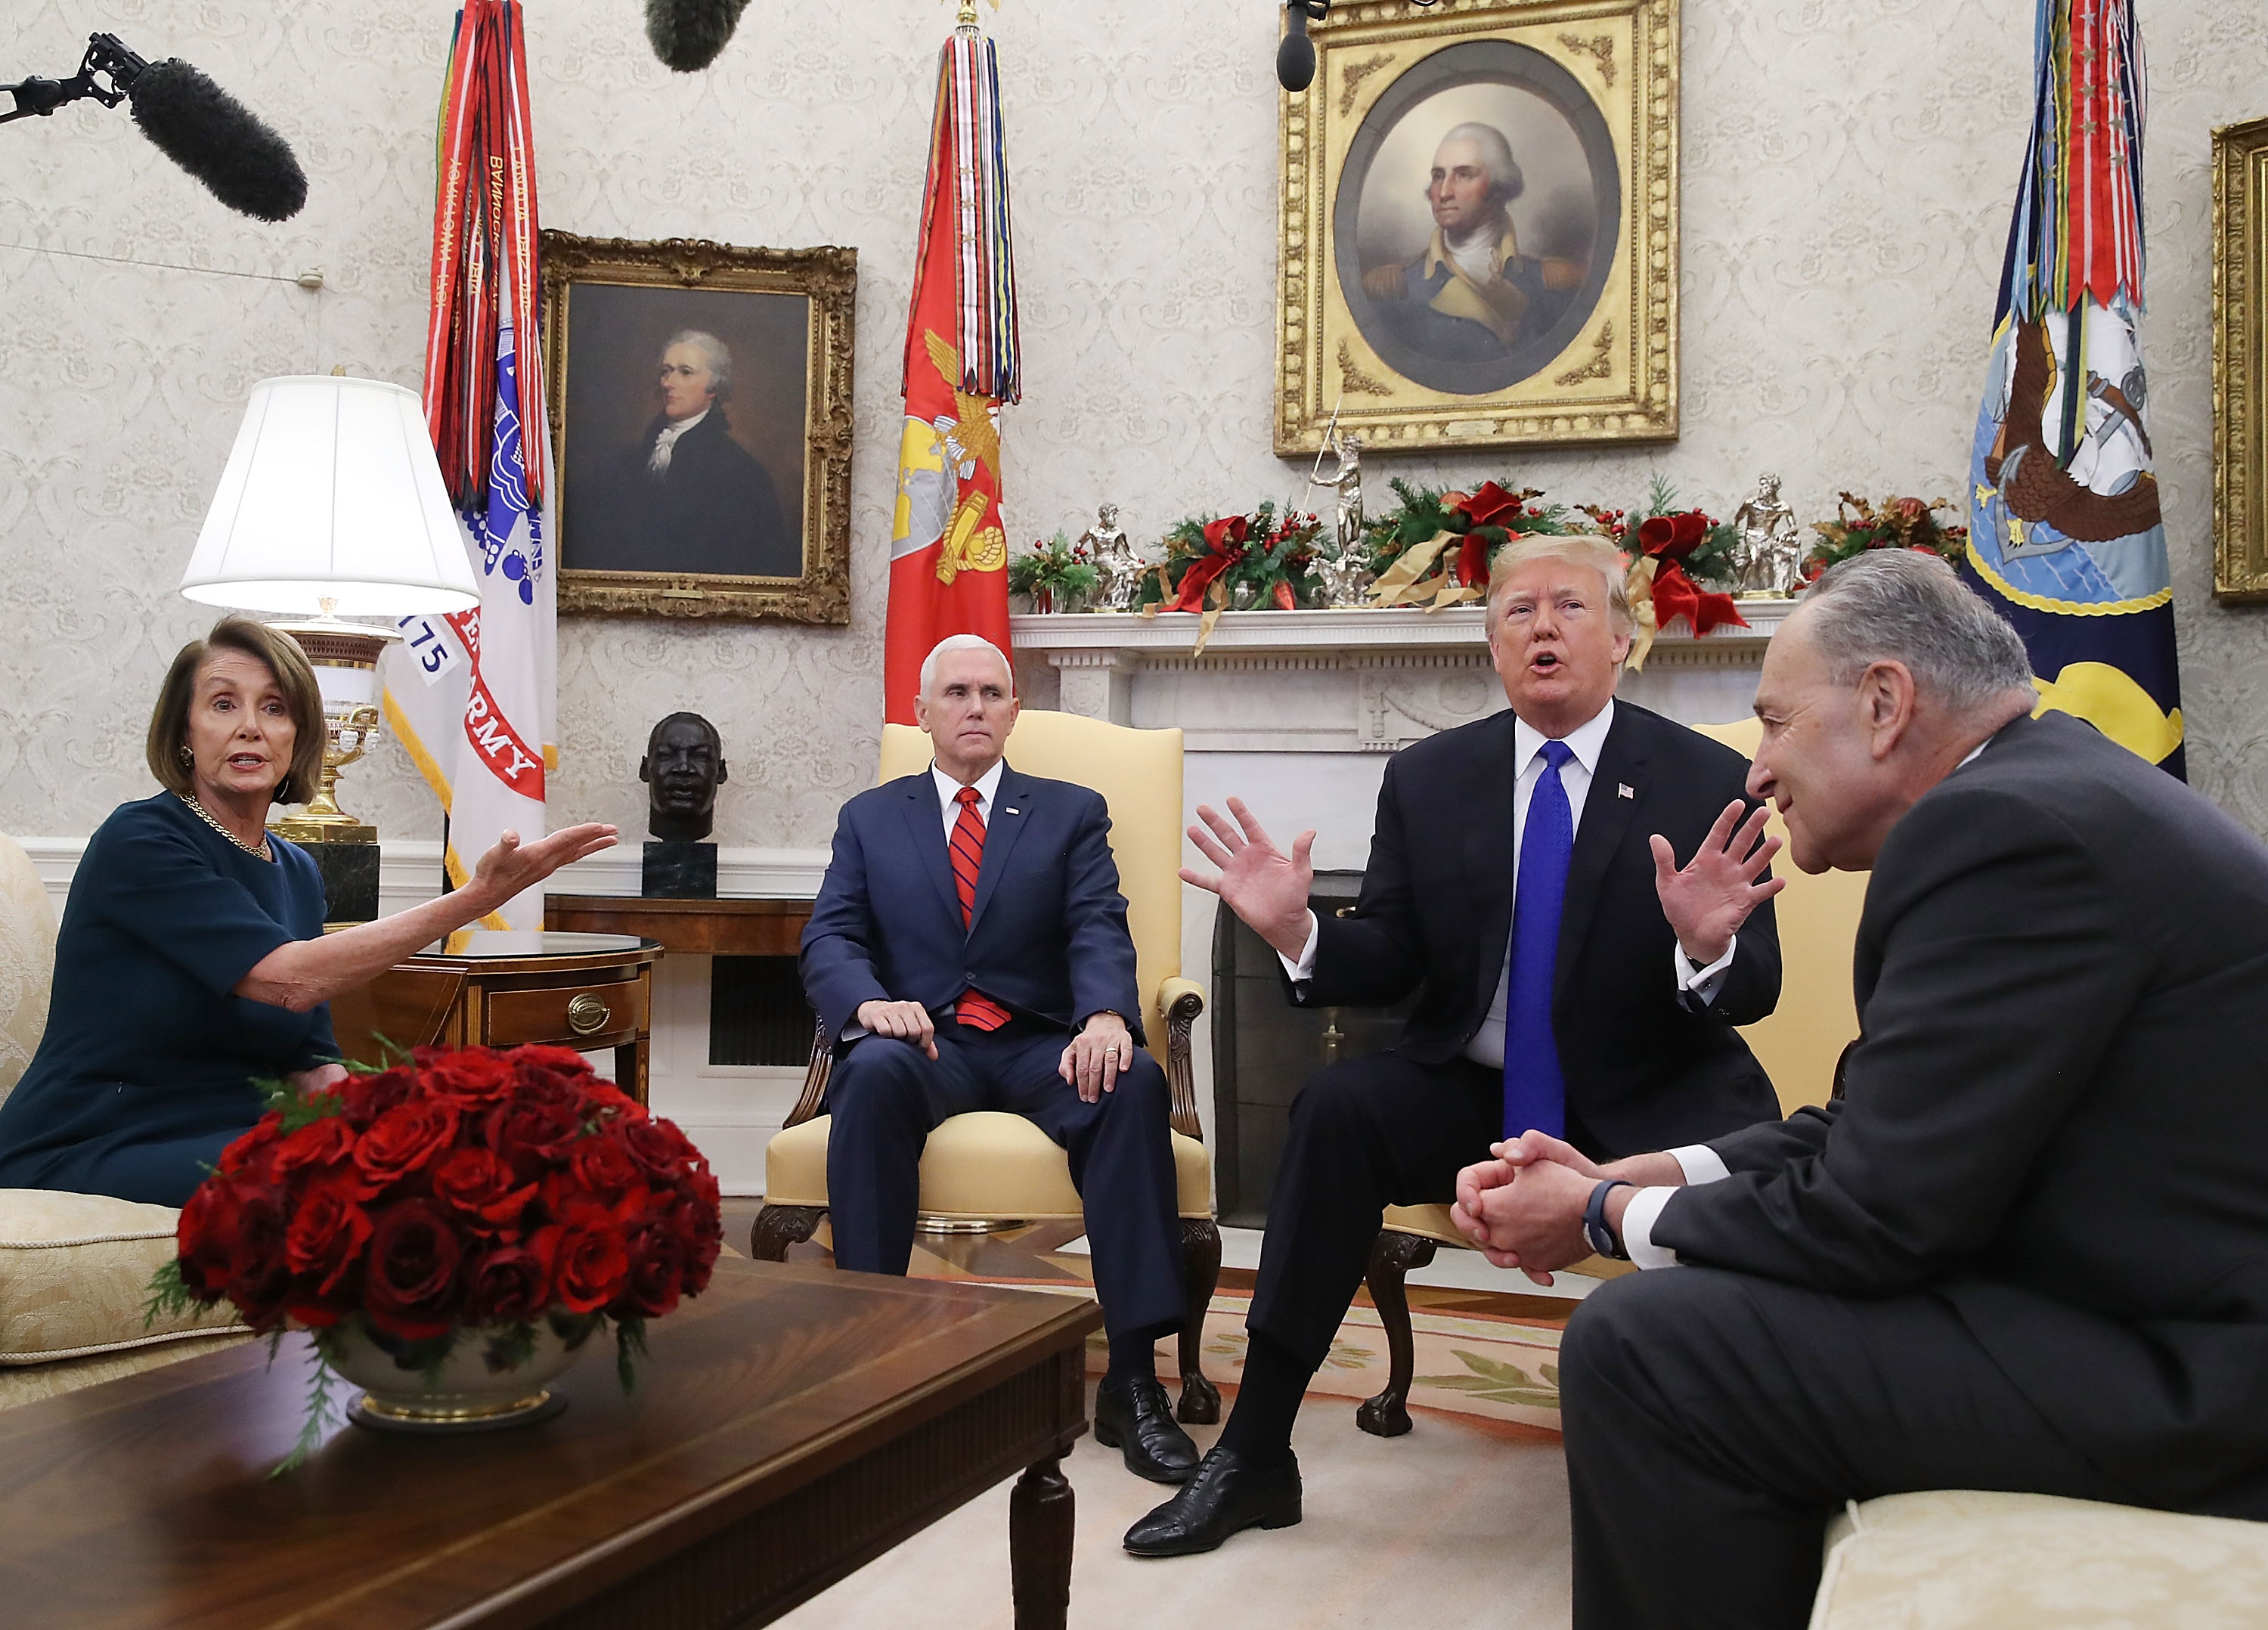 U.S. President Donald Trump (second from right) argues about border security with Senate Minority Leader Chuck Schumer (right) and House Minority Leader Nancy Pelosi as Vice President Mike Pence sits nearby in the Oval Office on December 11, 2018 in Washington, DC. (Photo by Mark Wilson/Getty Images)